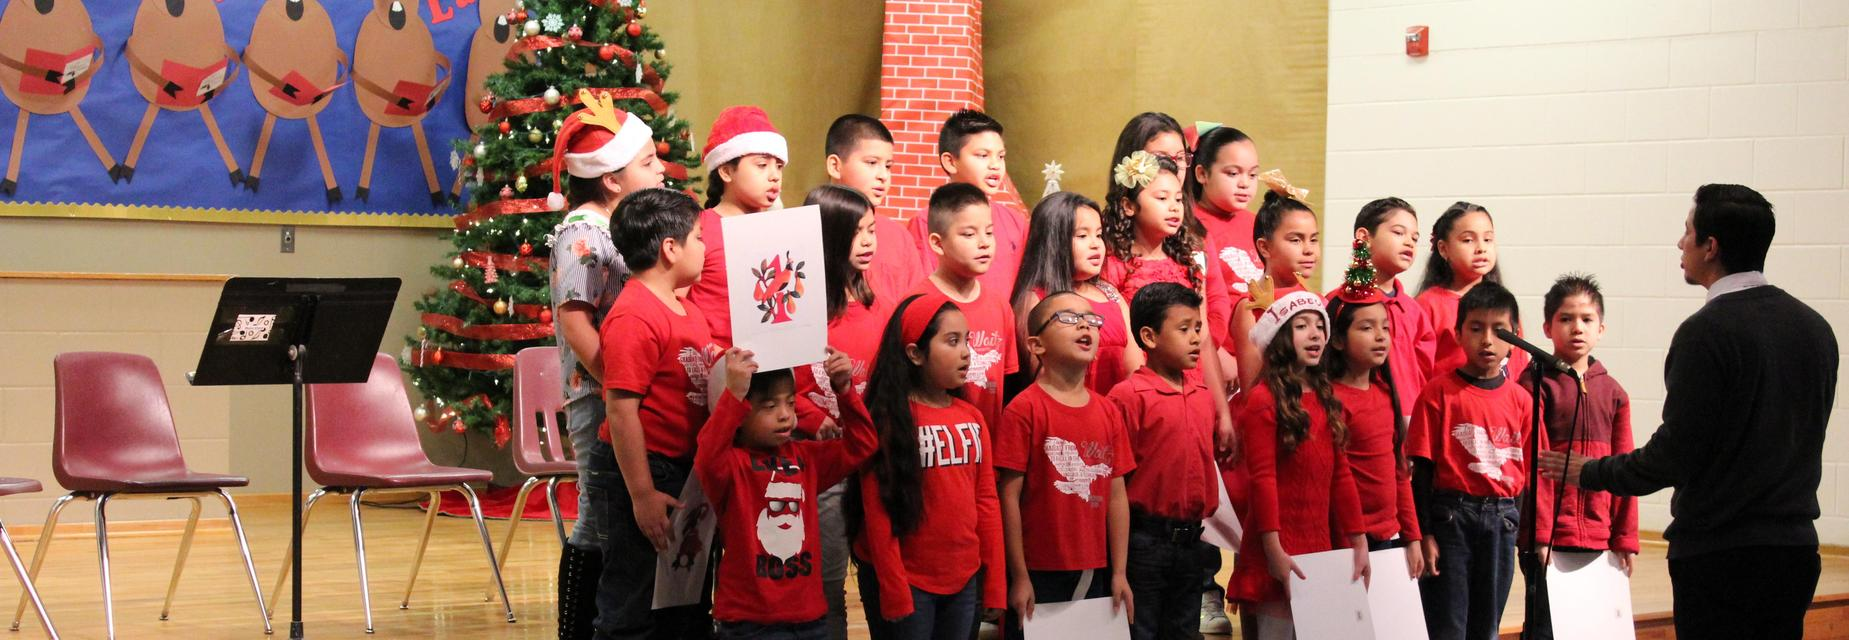 Choir kids performing the 12 Days of Christmas